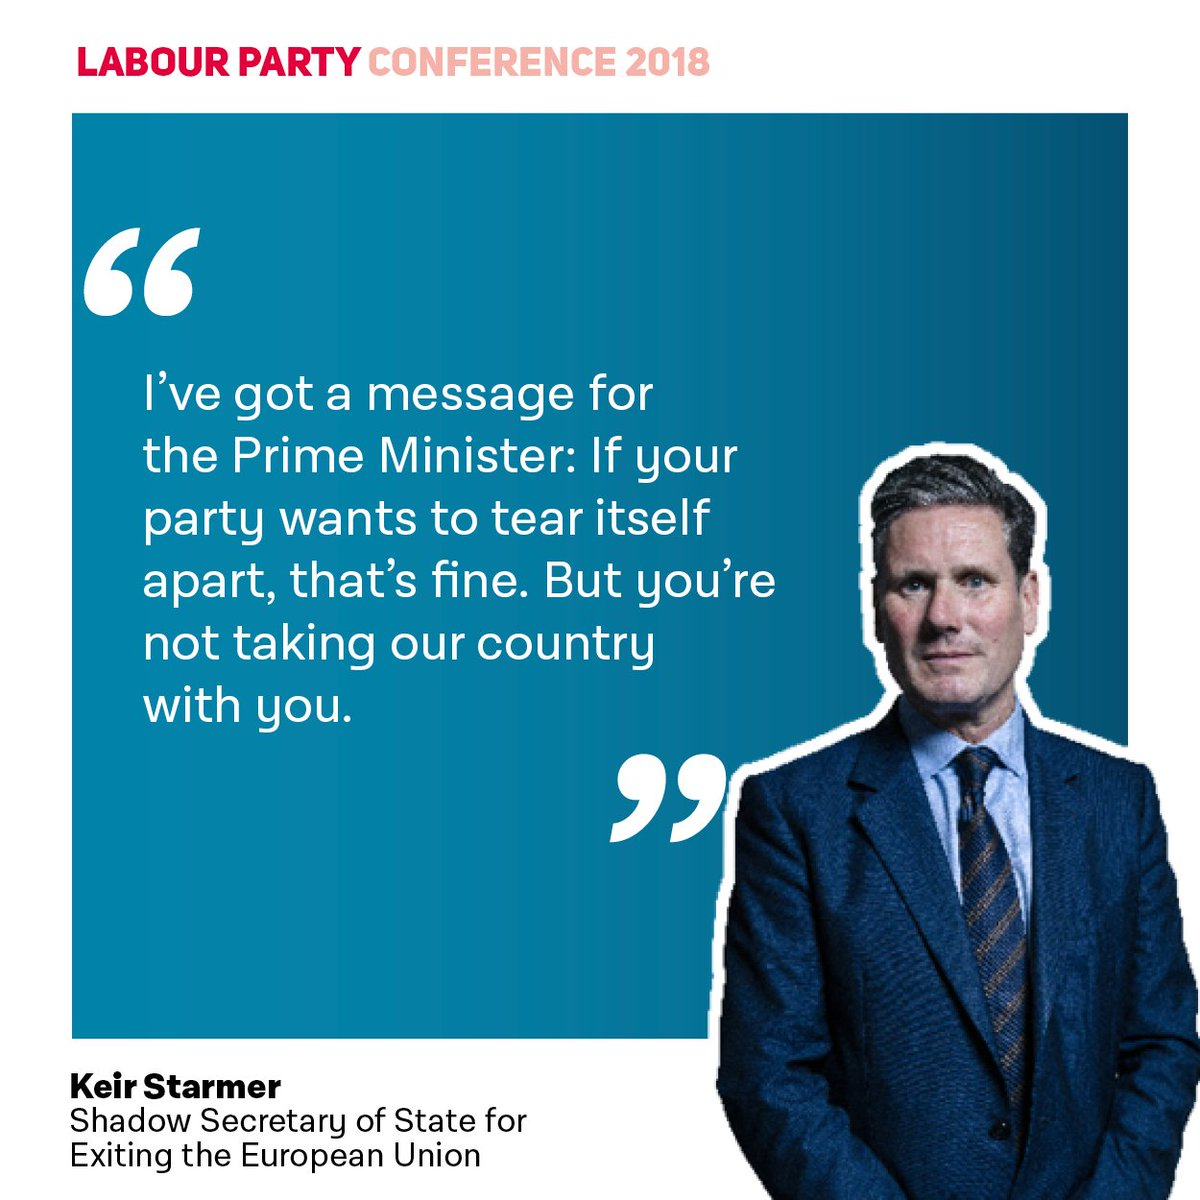 📣 I've got a message for the Prime Minister: If your party wants to tear itself apart, that's fine. But you're not taking our country with you. @Keir_Starmer #Lab18